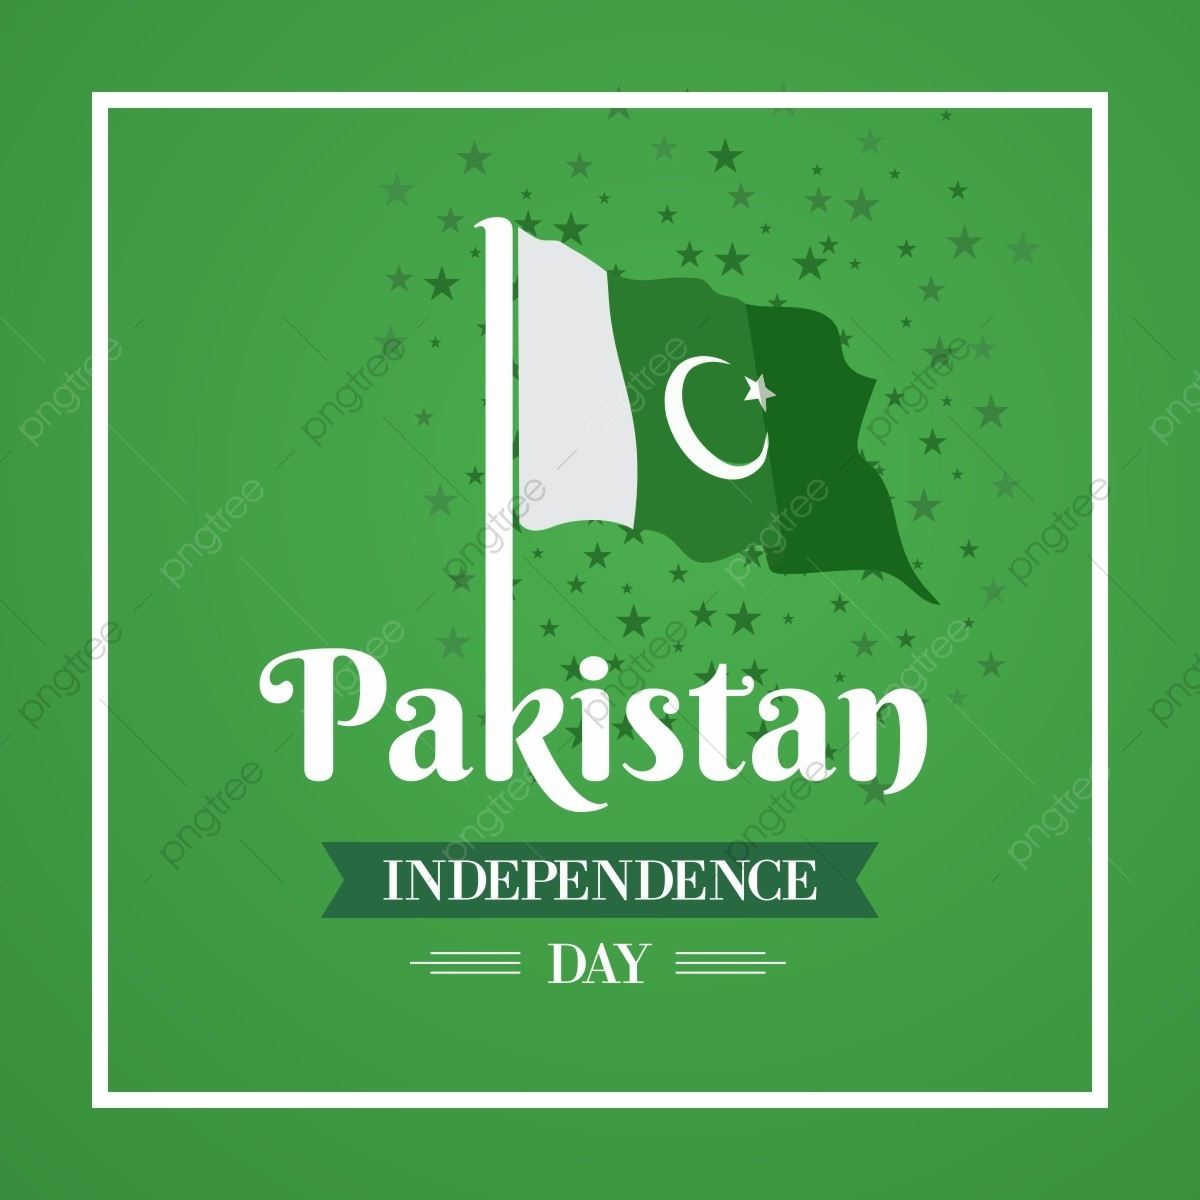 Happy Independence Day 14 August Pakistan Greeting Card Pakistan Flag Of Pakistan Stars Png And Vector With Transparent Background For Free Download